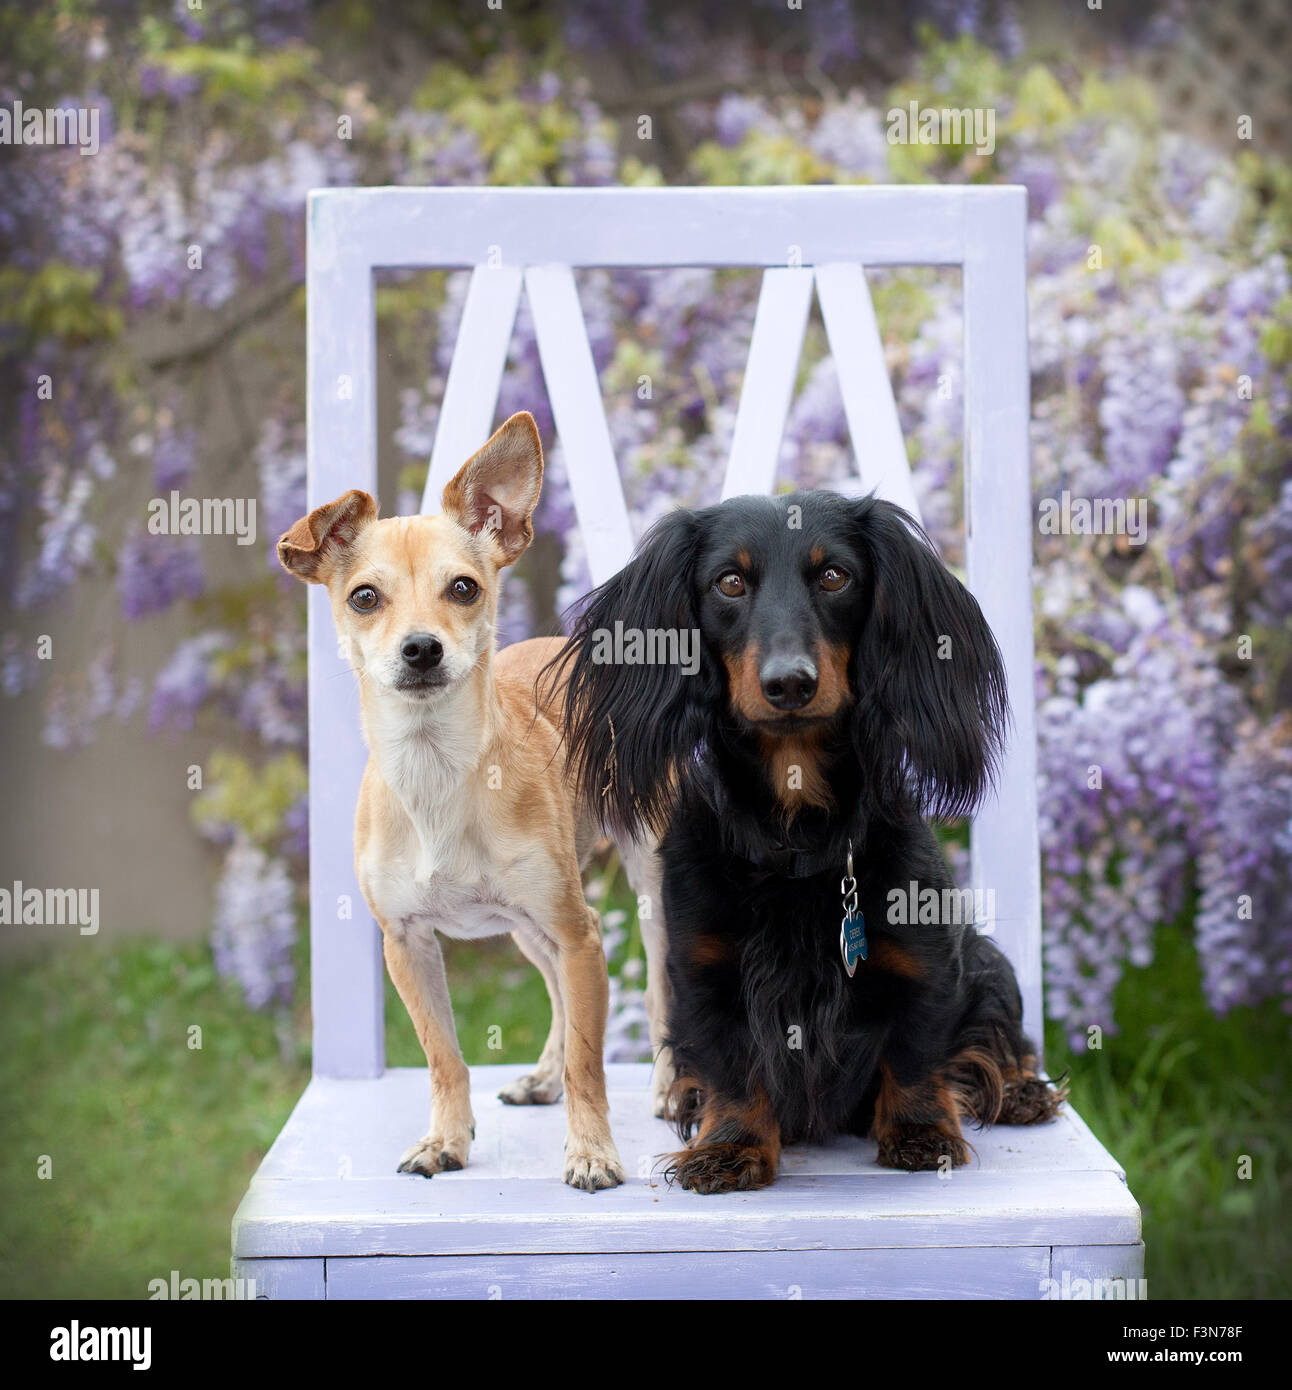 2 little dogs sitting on a lavendar wood chair in front of wisteria vine flowers looking bright eyes to the camera. - Stock Image